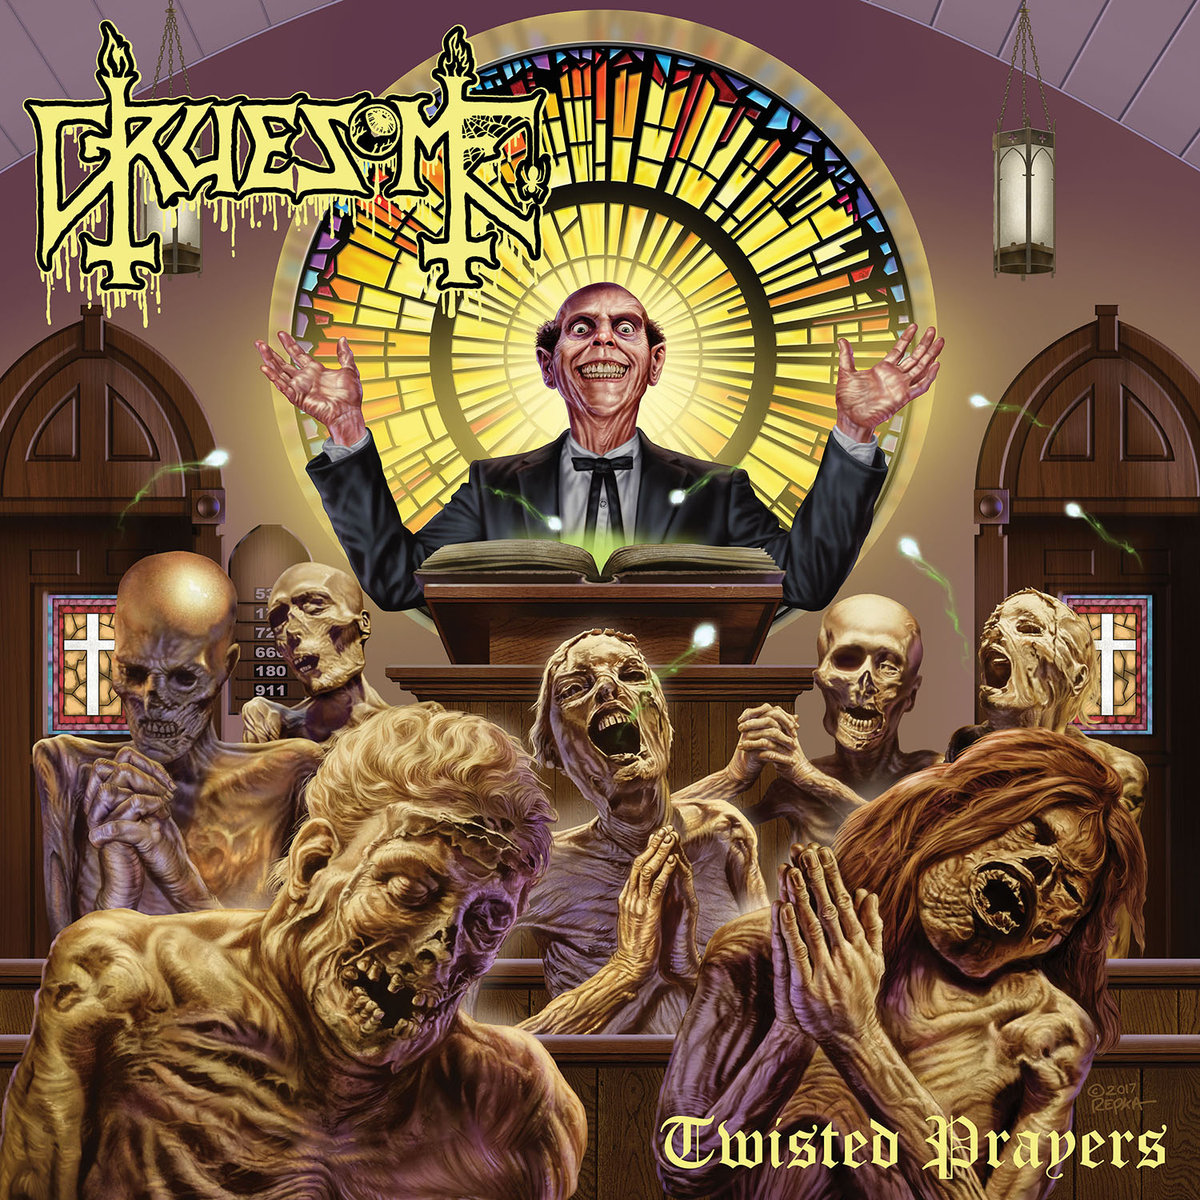 """Album Review: Twisted Prayers by Gruesome -  DEATH. My favorite. Not only is death the most fascinating subject of all, it is also an awesome fuckin' band. Fallen metal hero Chuck Schuldiner and his band of misfits pioneered and basically created the genre of death metal. From their 1987 debut """"Scream Bloody Gore"""" through their seventh and final record """"The Sound of Perseverance"""" in 1998, the band spawned countless classic death metal anthems, trademarked the 'death growl', played down the most face melting riffs anyone has ever heard at the time, and most importantly; paved the way and inspired hundreds of bands to spread this plague we call death metal amongst the Earth. The 90's """"old school"""" death metal scene was and is by many considered the holy grail era in the metal world; with countless righteously wicked bands of the likes of Obituary, Deicide, Morbid Angel, Cannibal Corpse… we could be here all night. You get it it. But, only one dude is considered the """"Godfather of Death Metal,"""" and that's our boy Chuck Schuldiner, leader and mastermind of Death that suddenly died in 2001. In the wake of his death, countless bands and fans alike continue to carry the gore-filled torch he lit… which brings us to exhibit B, Gruesome. Born from the decomposing remains of Death, Gruesome was formed as somewhat of a side project by guitarist/vocalist Matt Harvey and drummer Gus Rios after their involvement in the Death To All Tours, a tour of death metal veterans paying tribute to death. Yeah, its ben twenty years since the final Death release, and bands are TOURING in their honor to this day. That says something, right? So, basically, the whole purpose of Gruesome's existence is to pay tribute to Death as well as to fly the old-school death metal flag in a world grossly devoid of such. And to that I say, a-fucking-men, brother. After being super impressed and nostalgia-ridden from jamming the first released single from this record """"A Waste of Life"""" for weeks before the full a"""